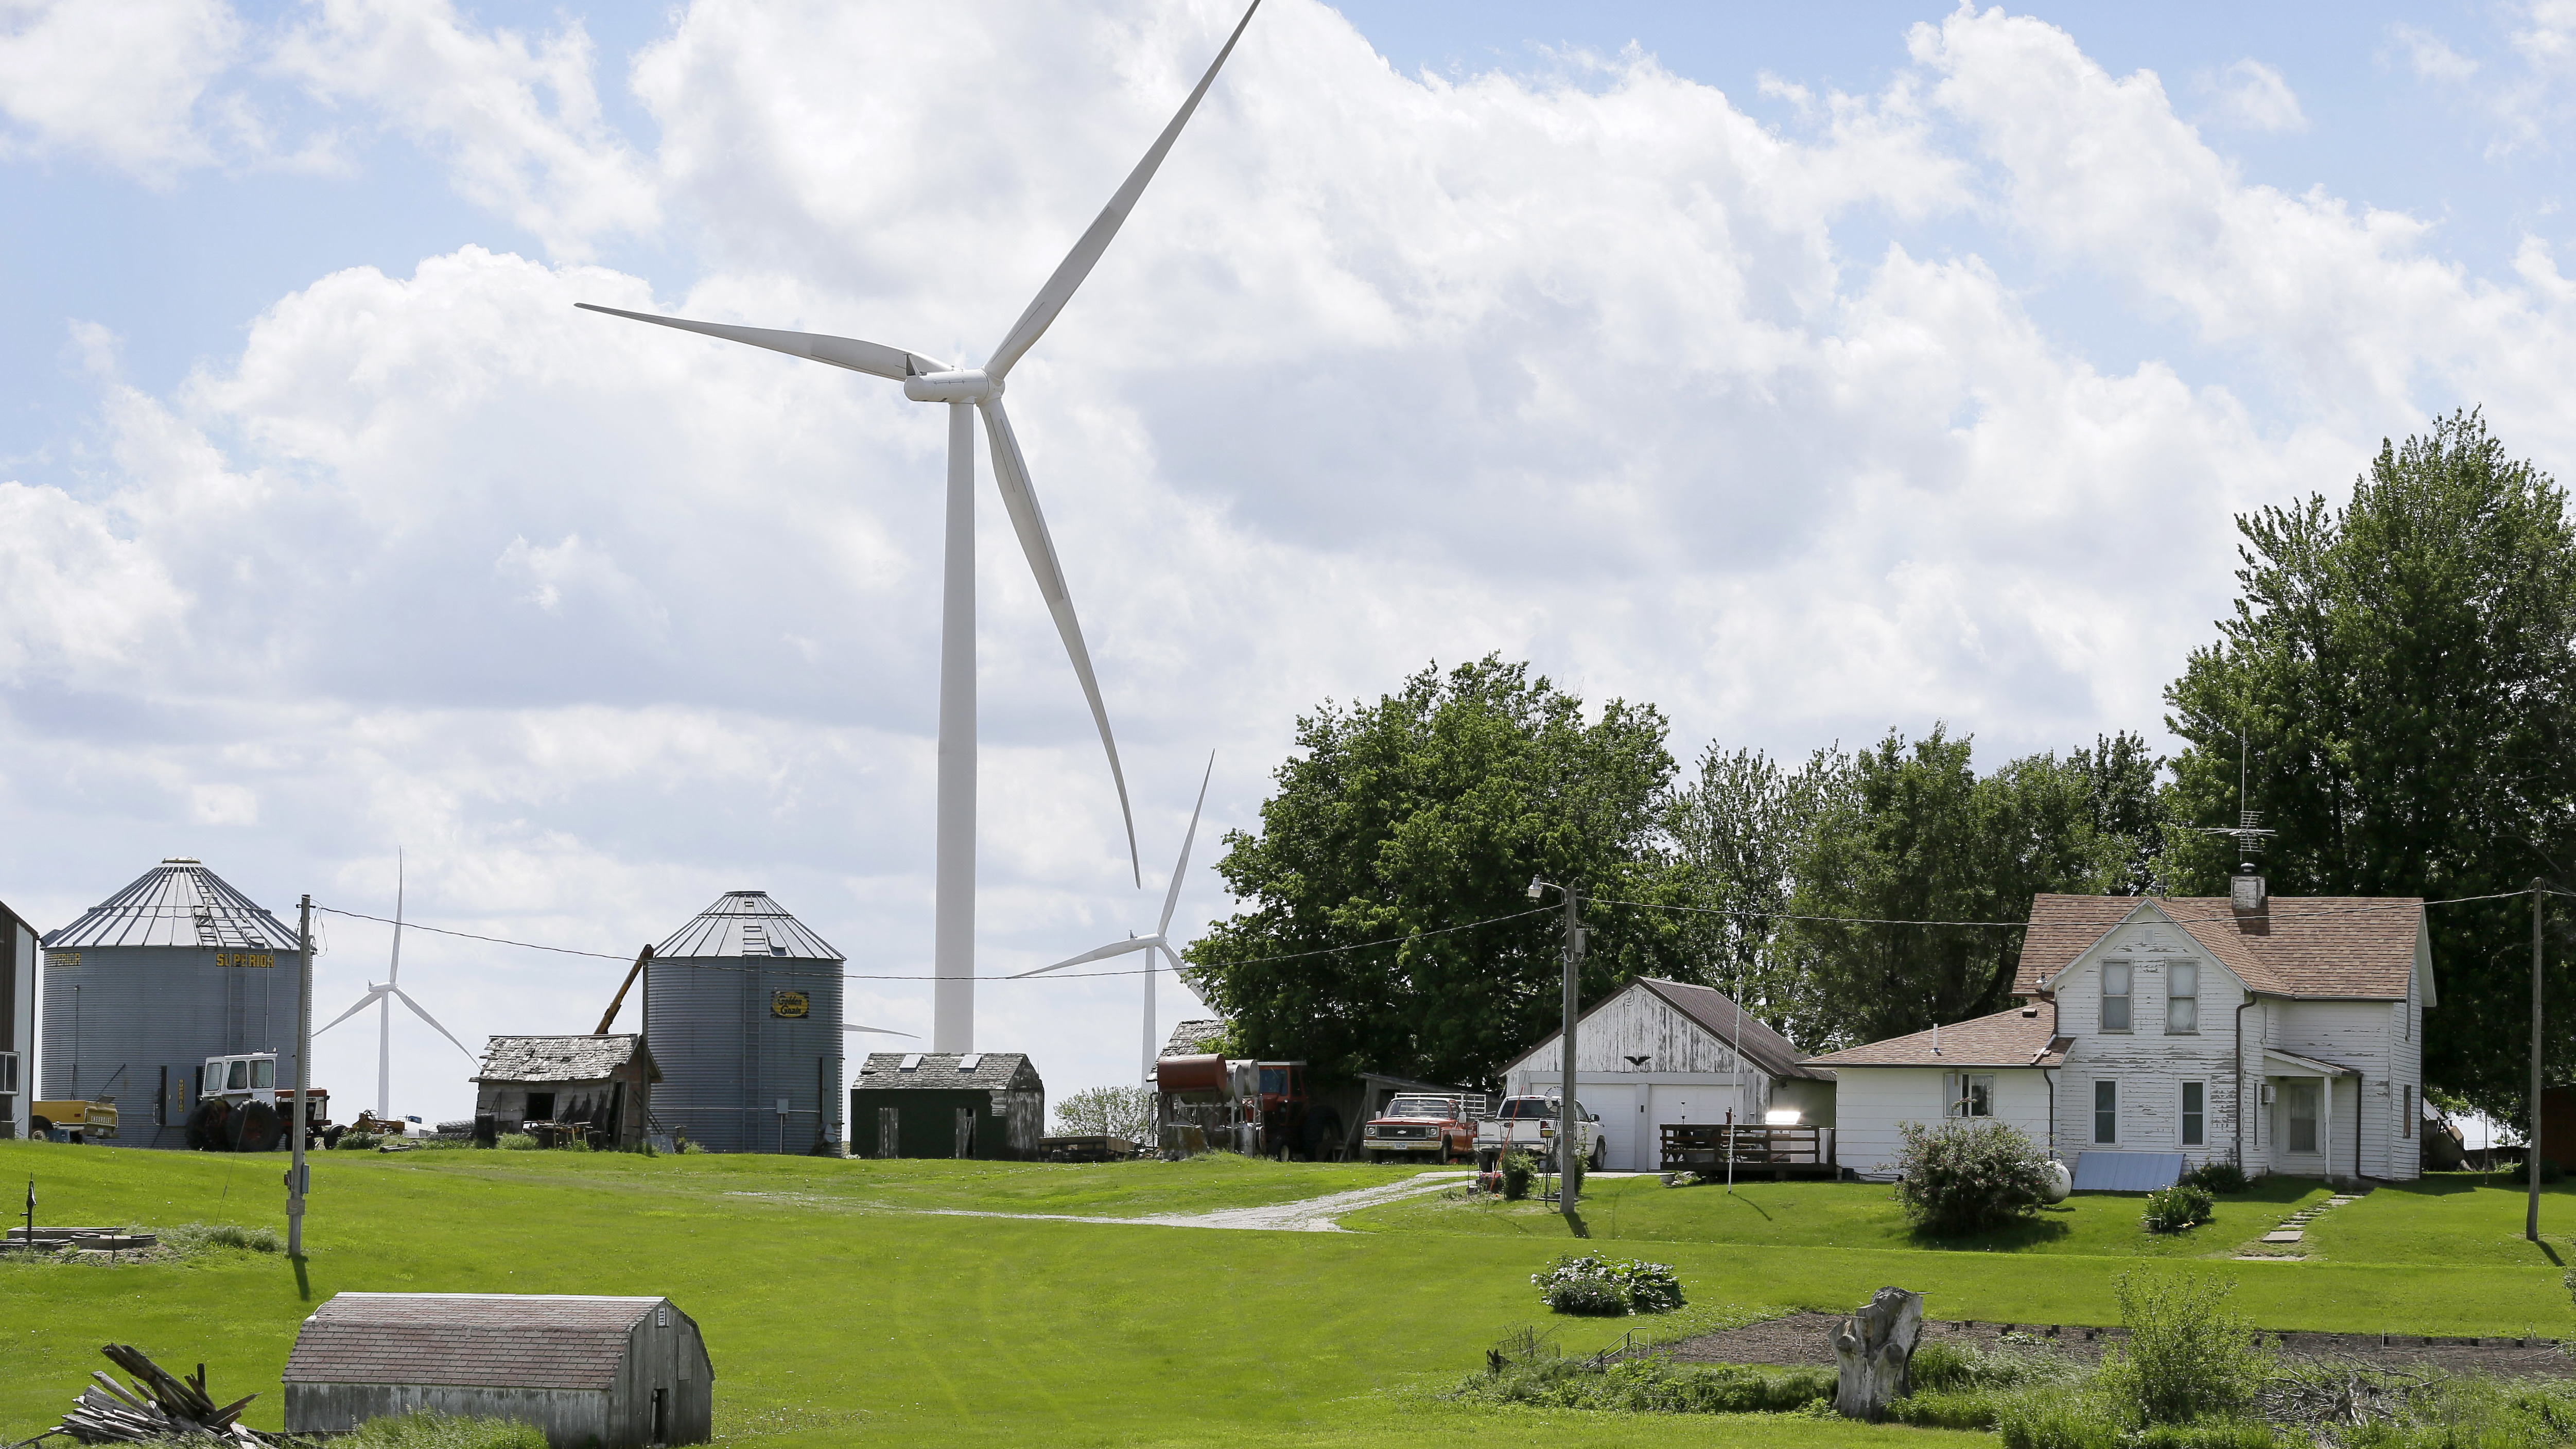 A wind turbine stands over a farmhouse in Adair, Iowa. Charlie Neibergall/AP